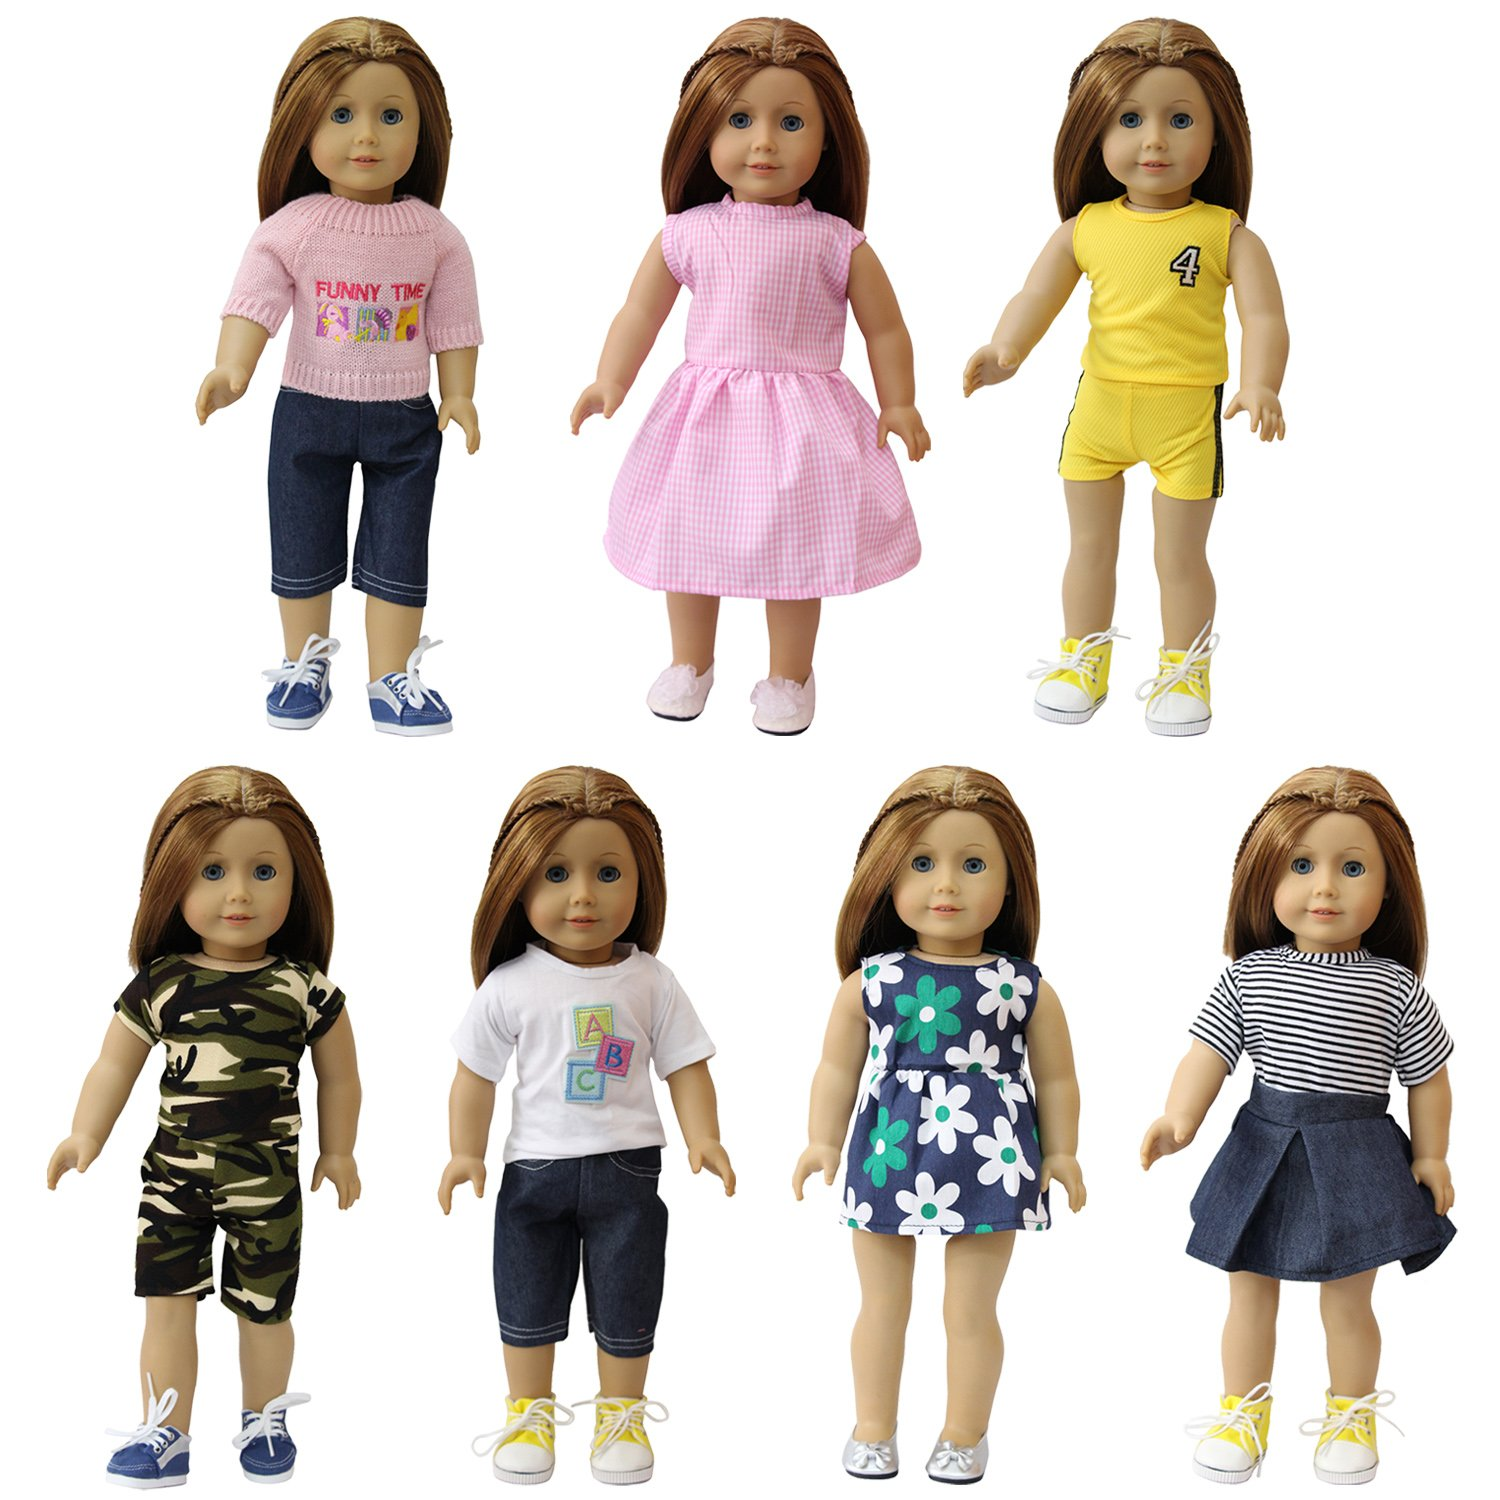 ZITA ELEMENT 7 Pcs American Girl Doll/Baby Alive Doll Clothes | 14-18 Inch Doll Dresses, Summer Outfits, Winter Sweater Mix & Match | Best Premium & Reward Gift for Girls